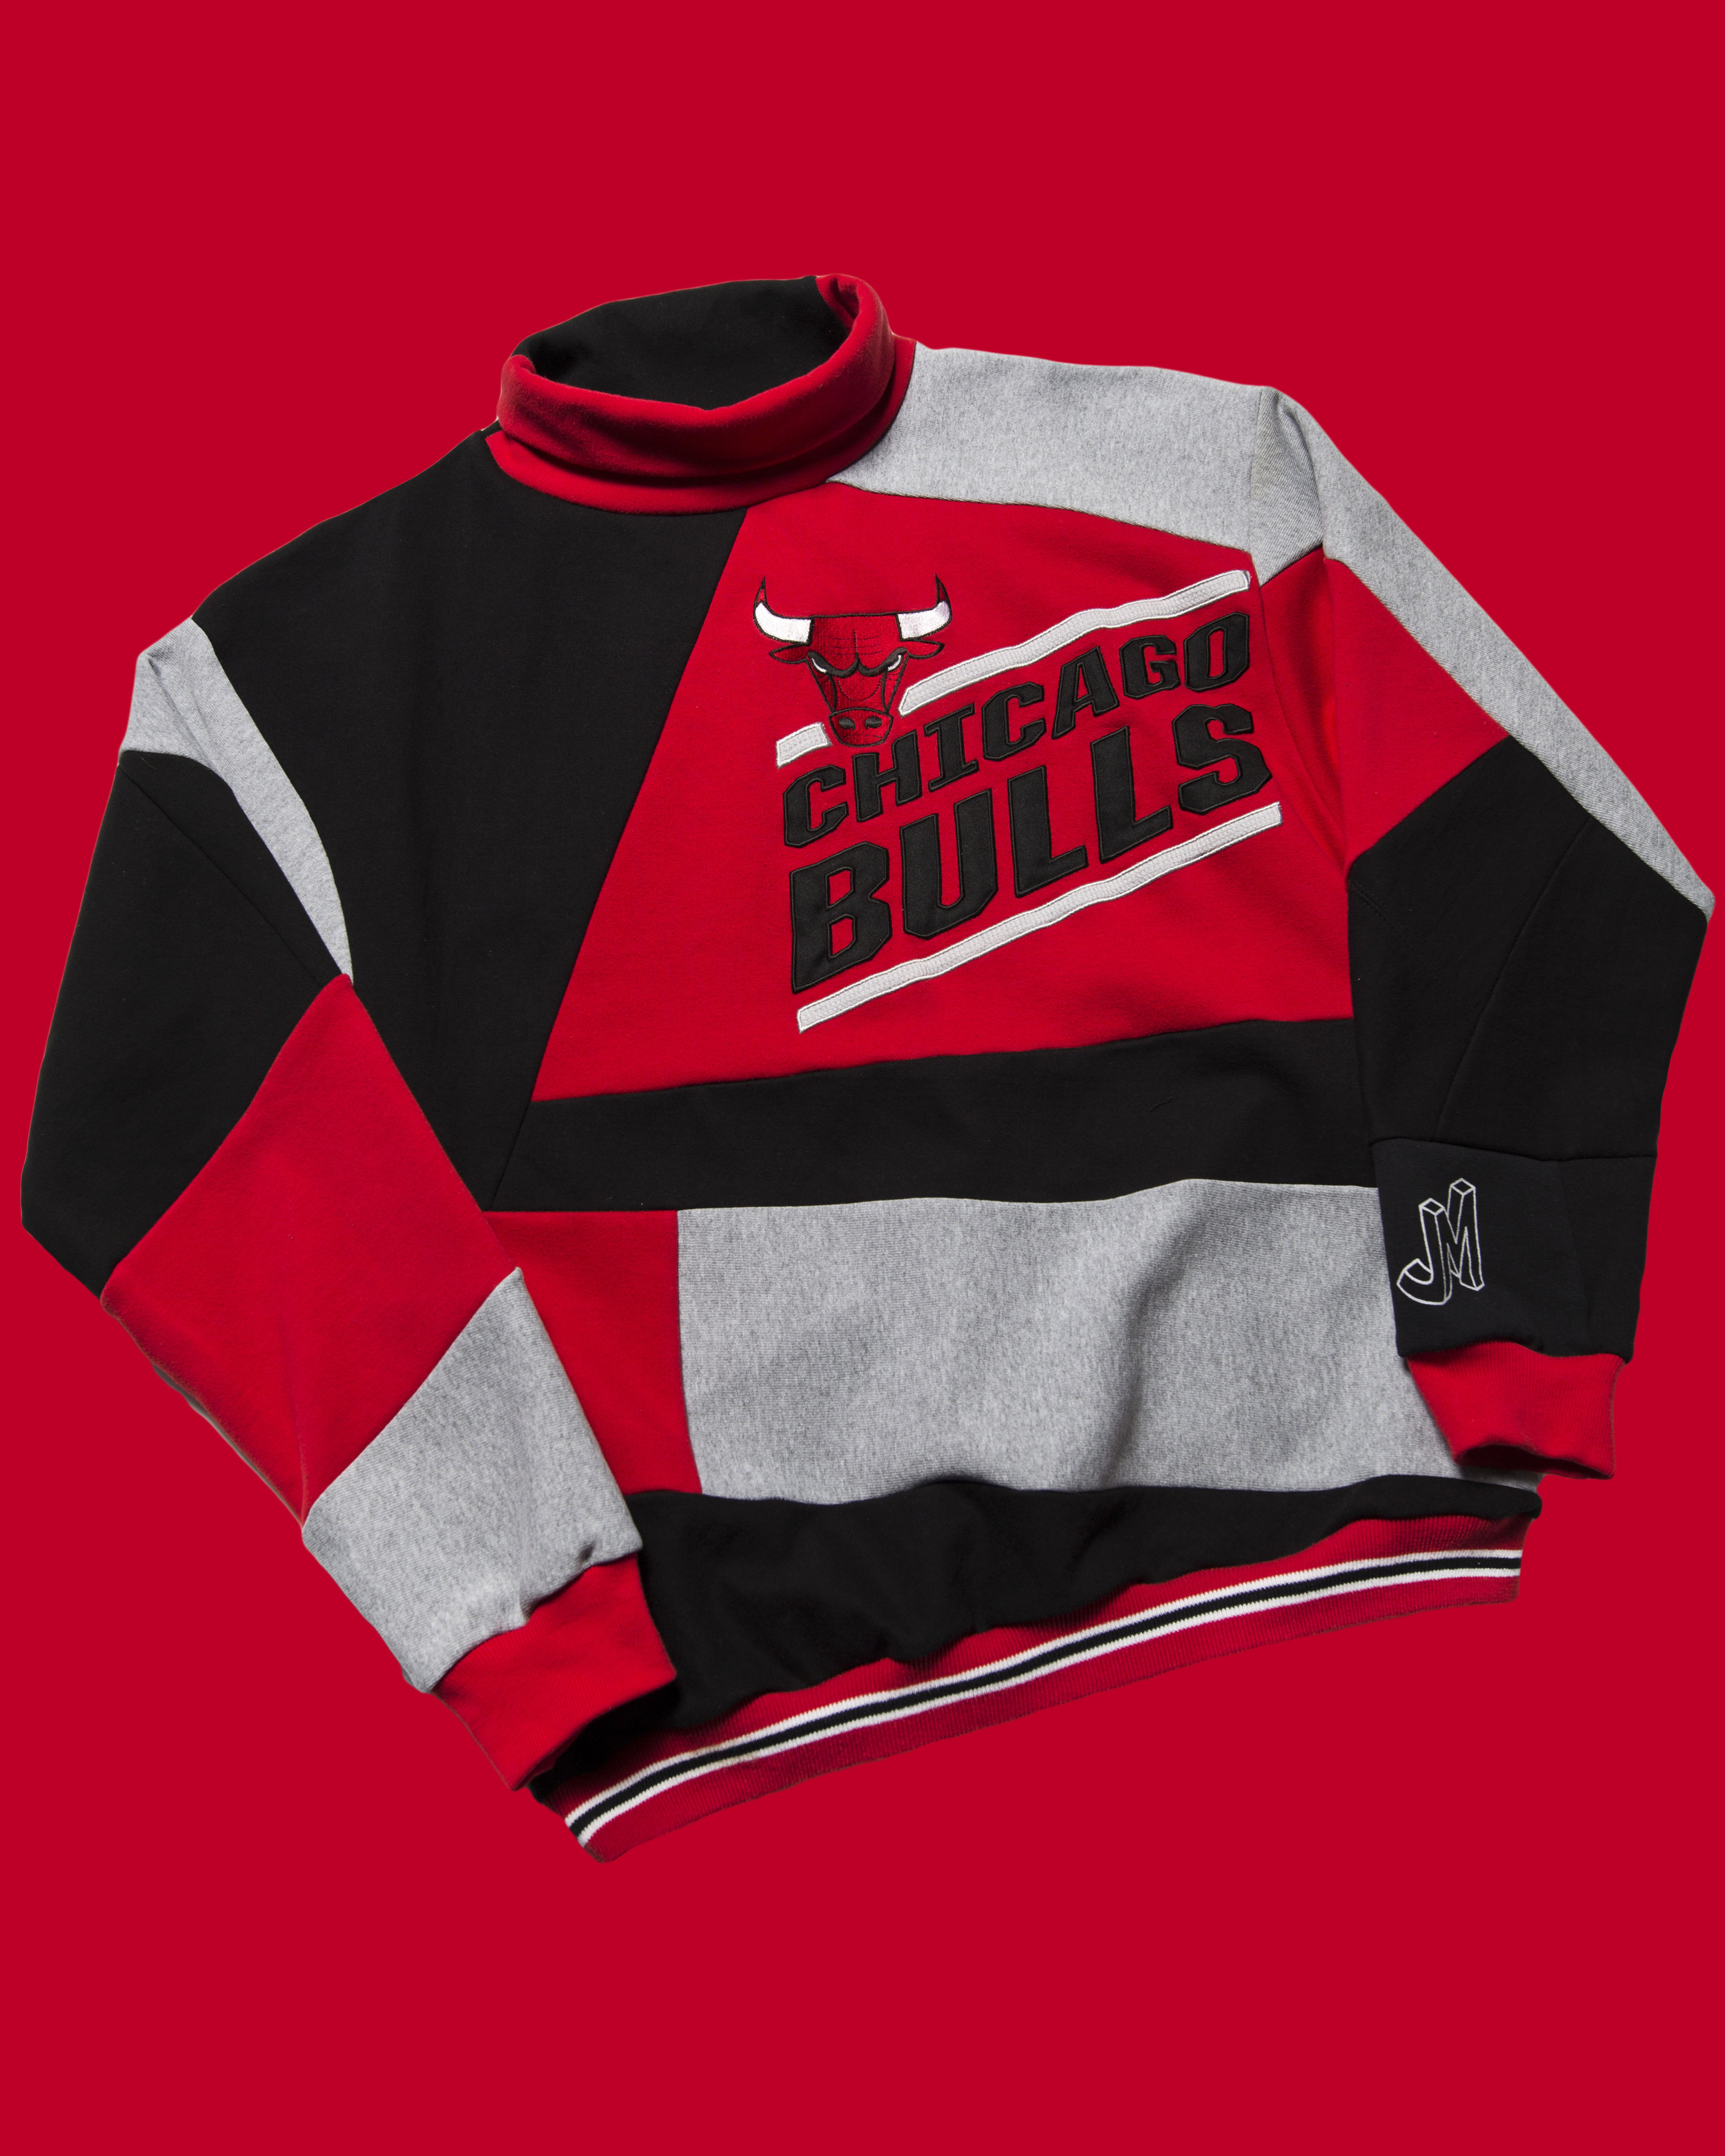 Bulls Mosaic - 90's style mock neck sweatshirt with embroidered bulls slanted graphic and JM wrist logo